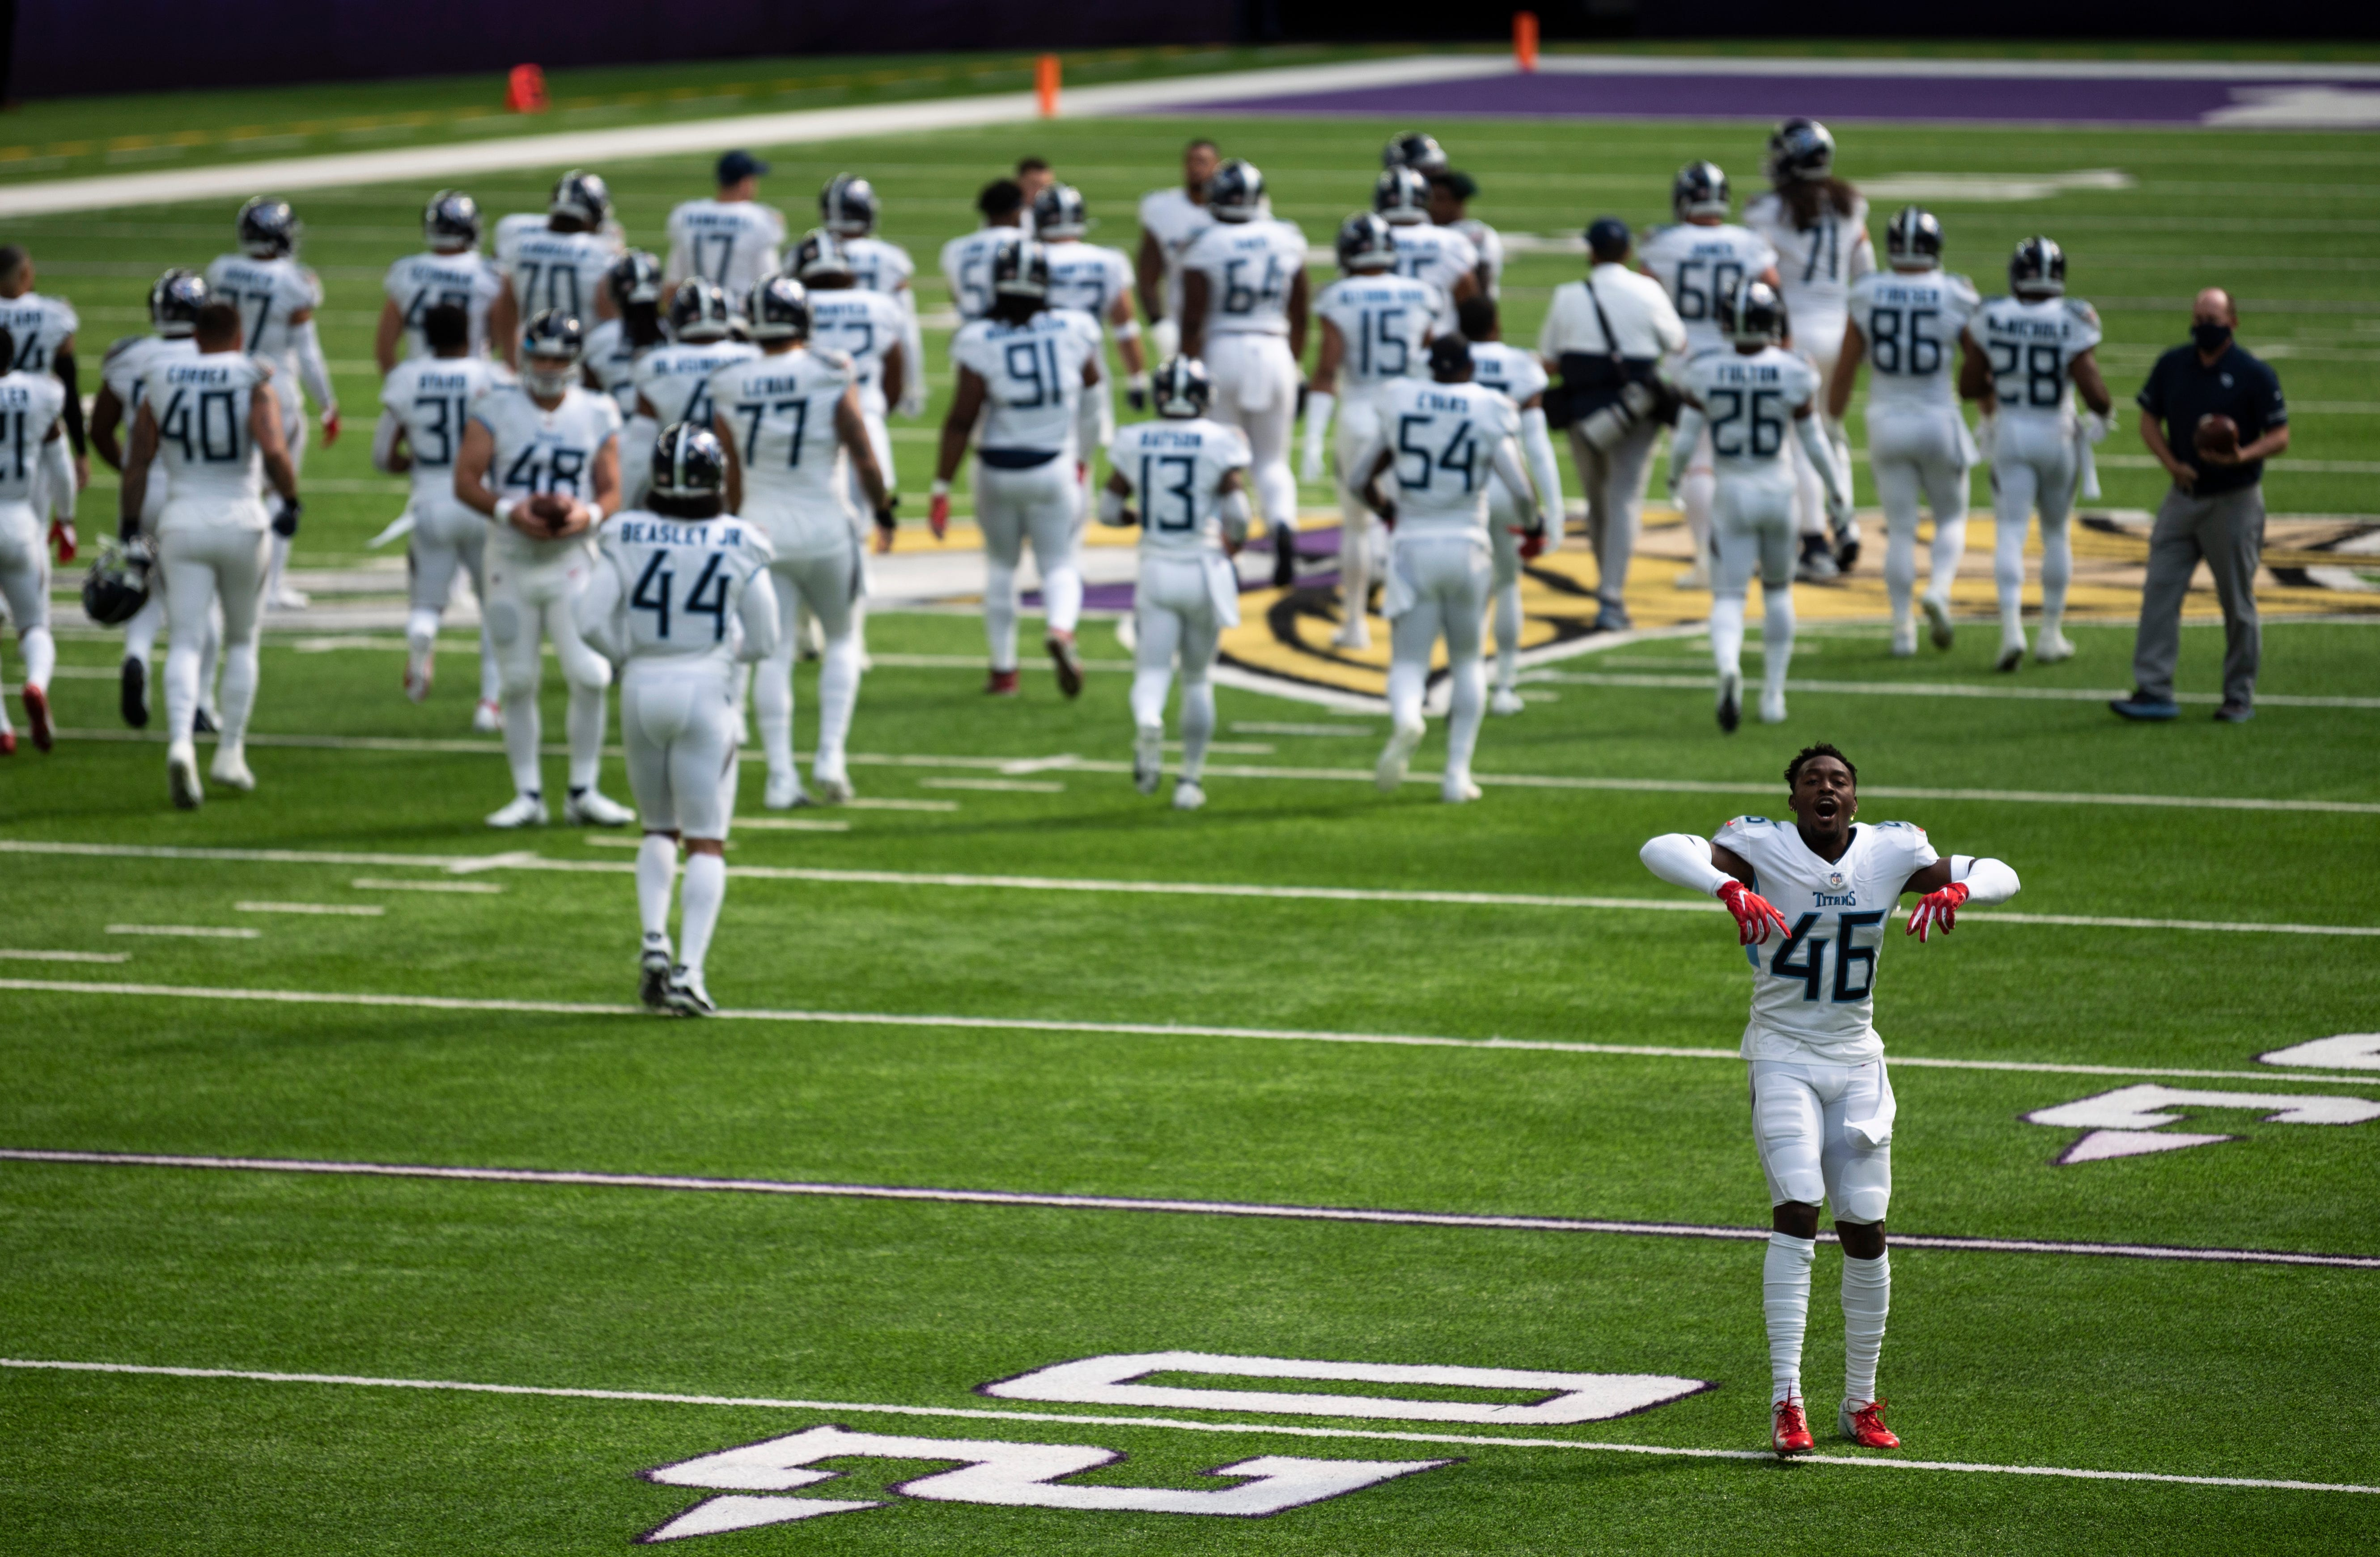 Tennessee Titans stop in-person team activities amid 'several' positive COVID-19 tests